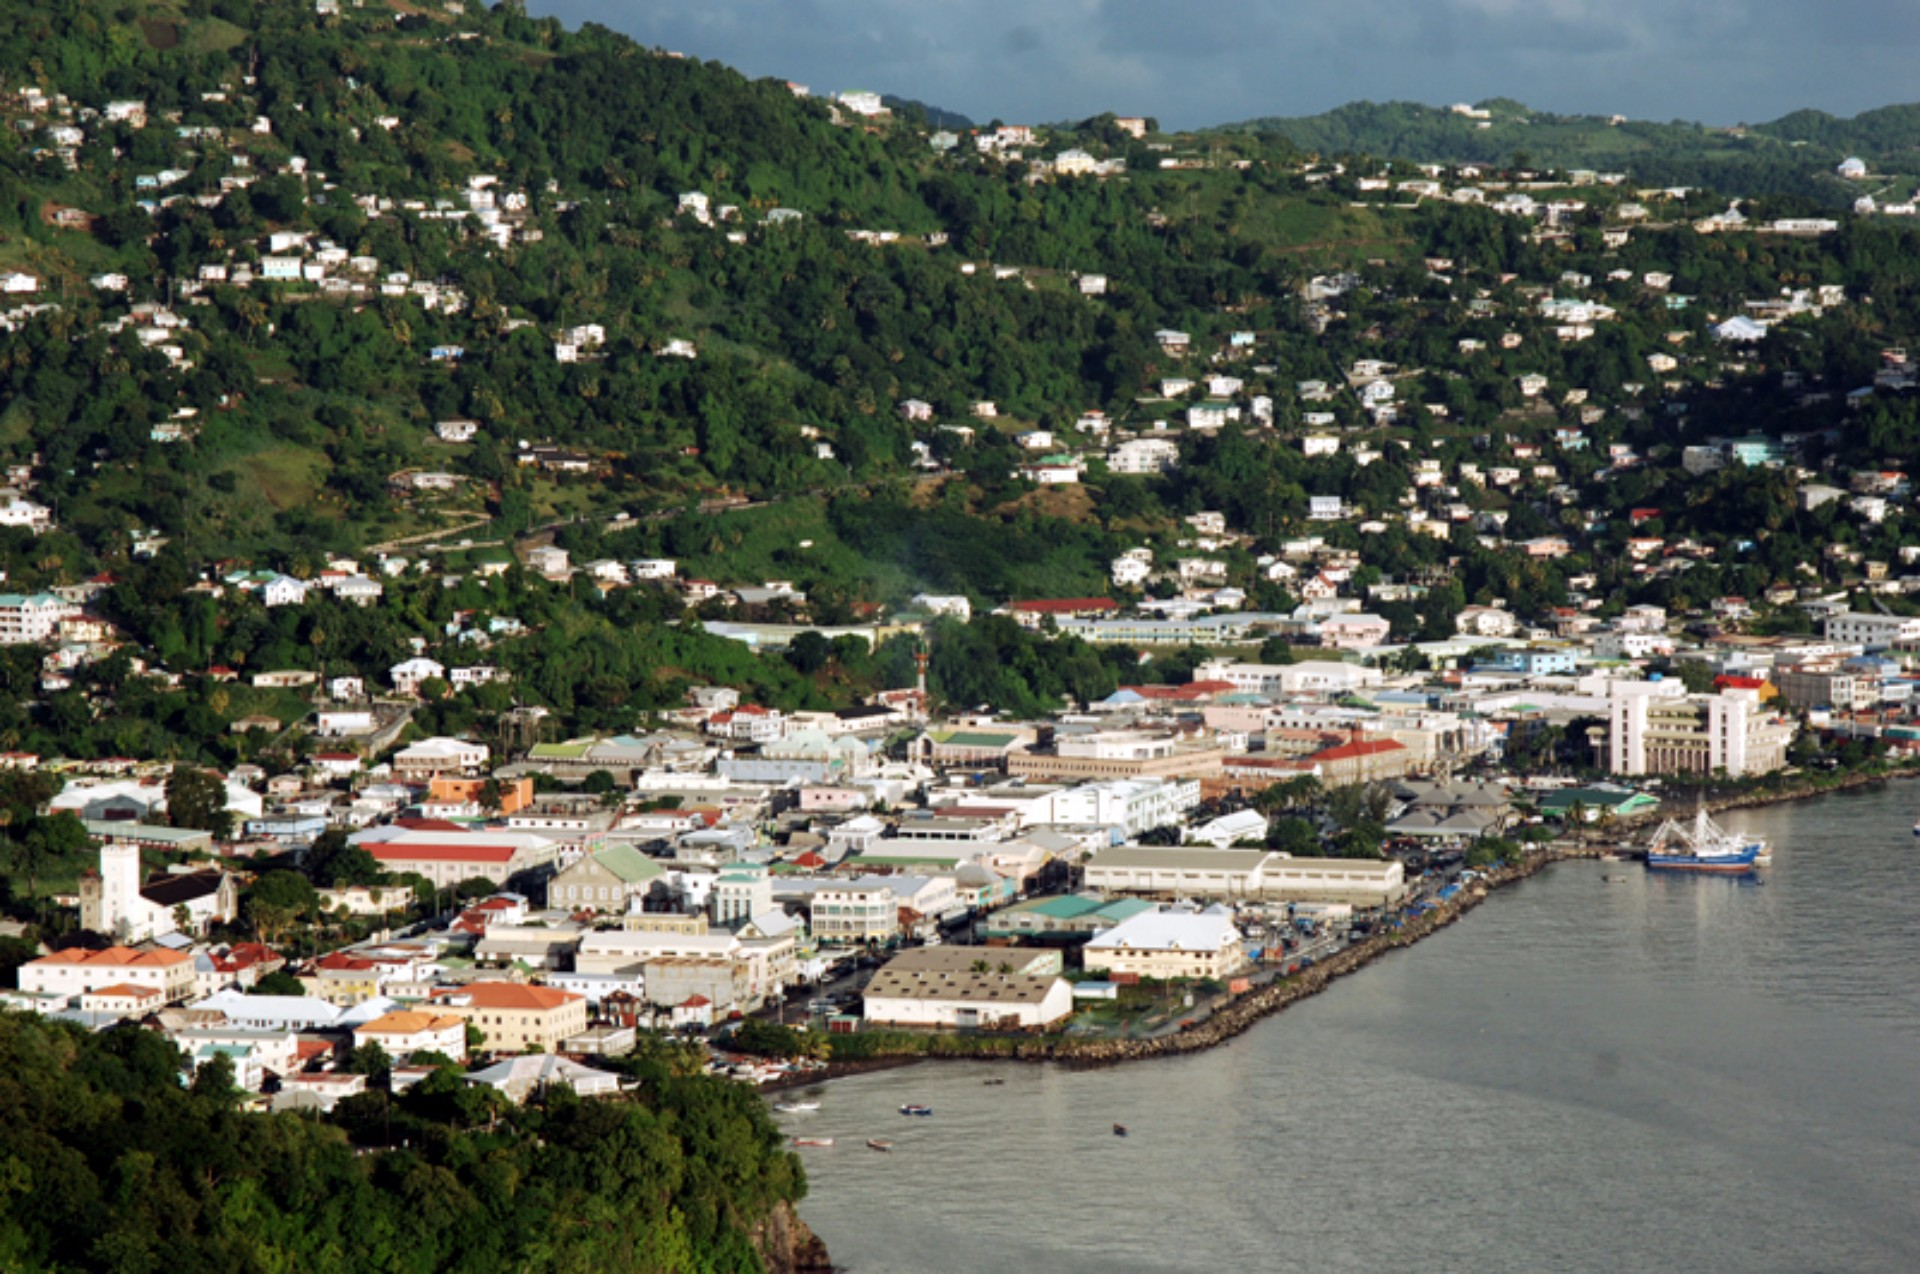 Saint Vincent And The Grenadines Population in 2017